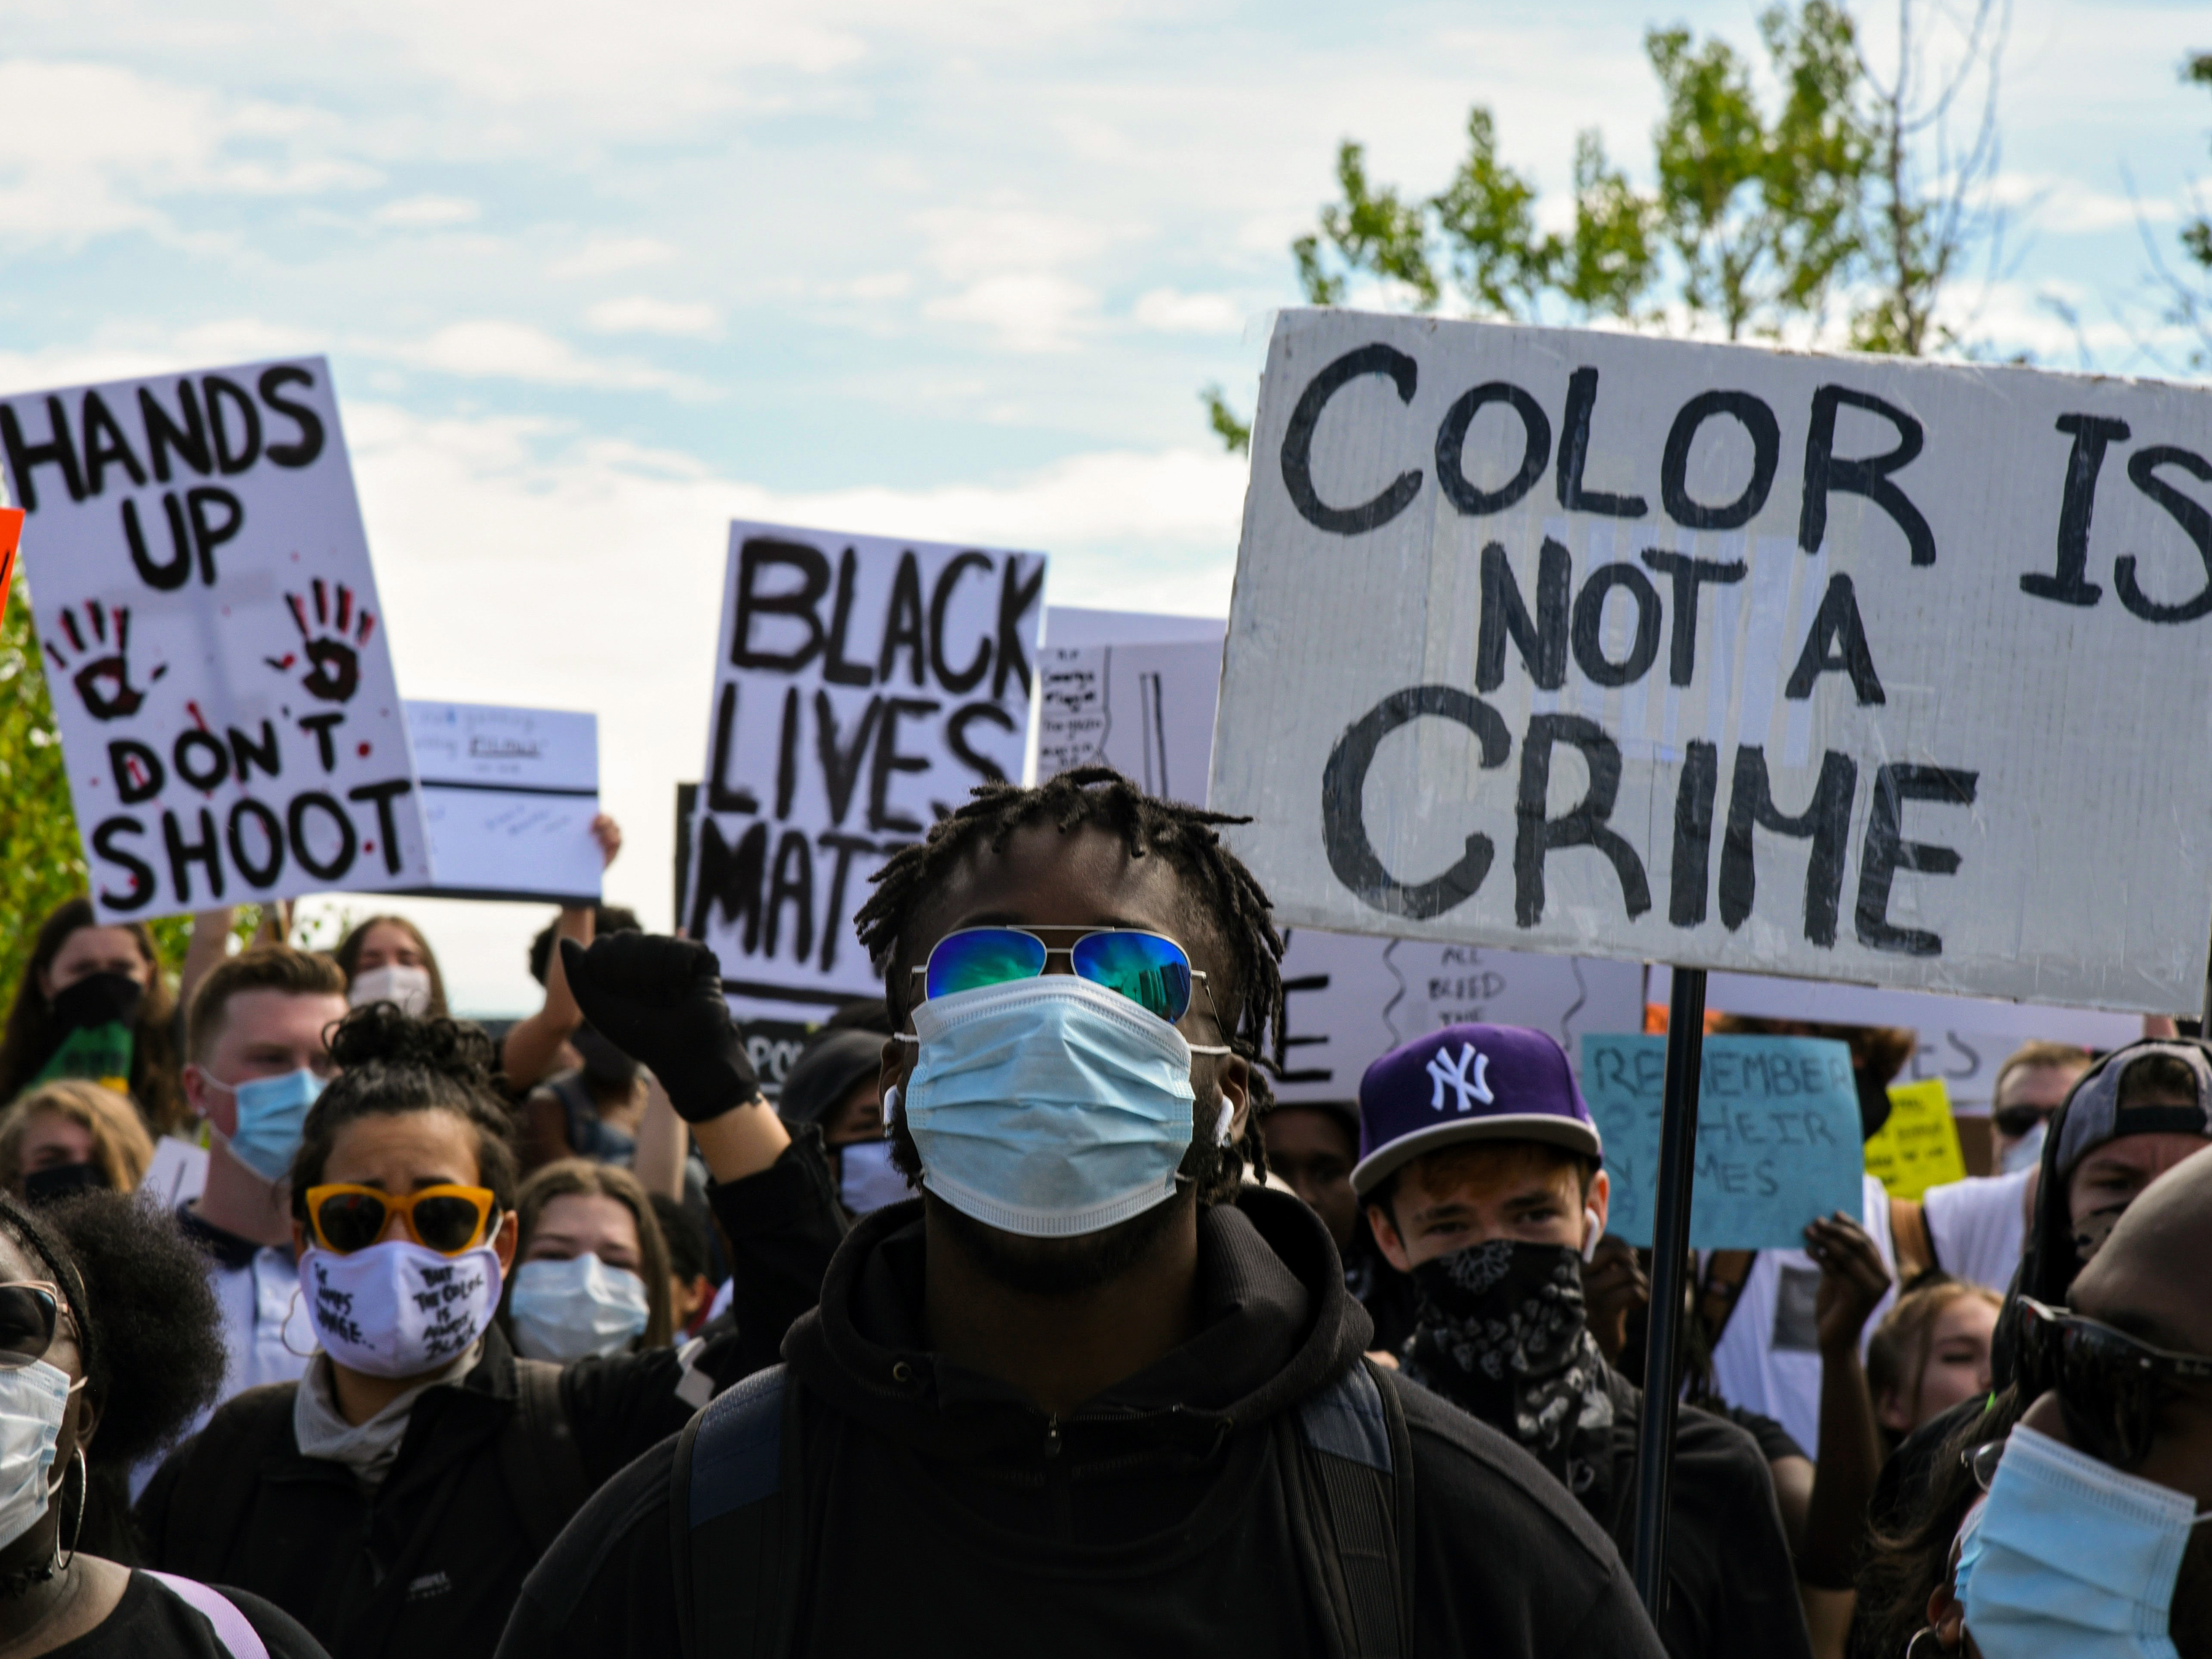 black_lives_matter_protest_calgary_os_8_cropped_high_dpi